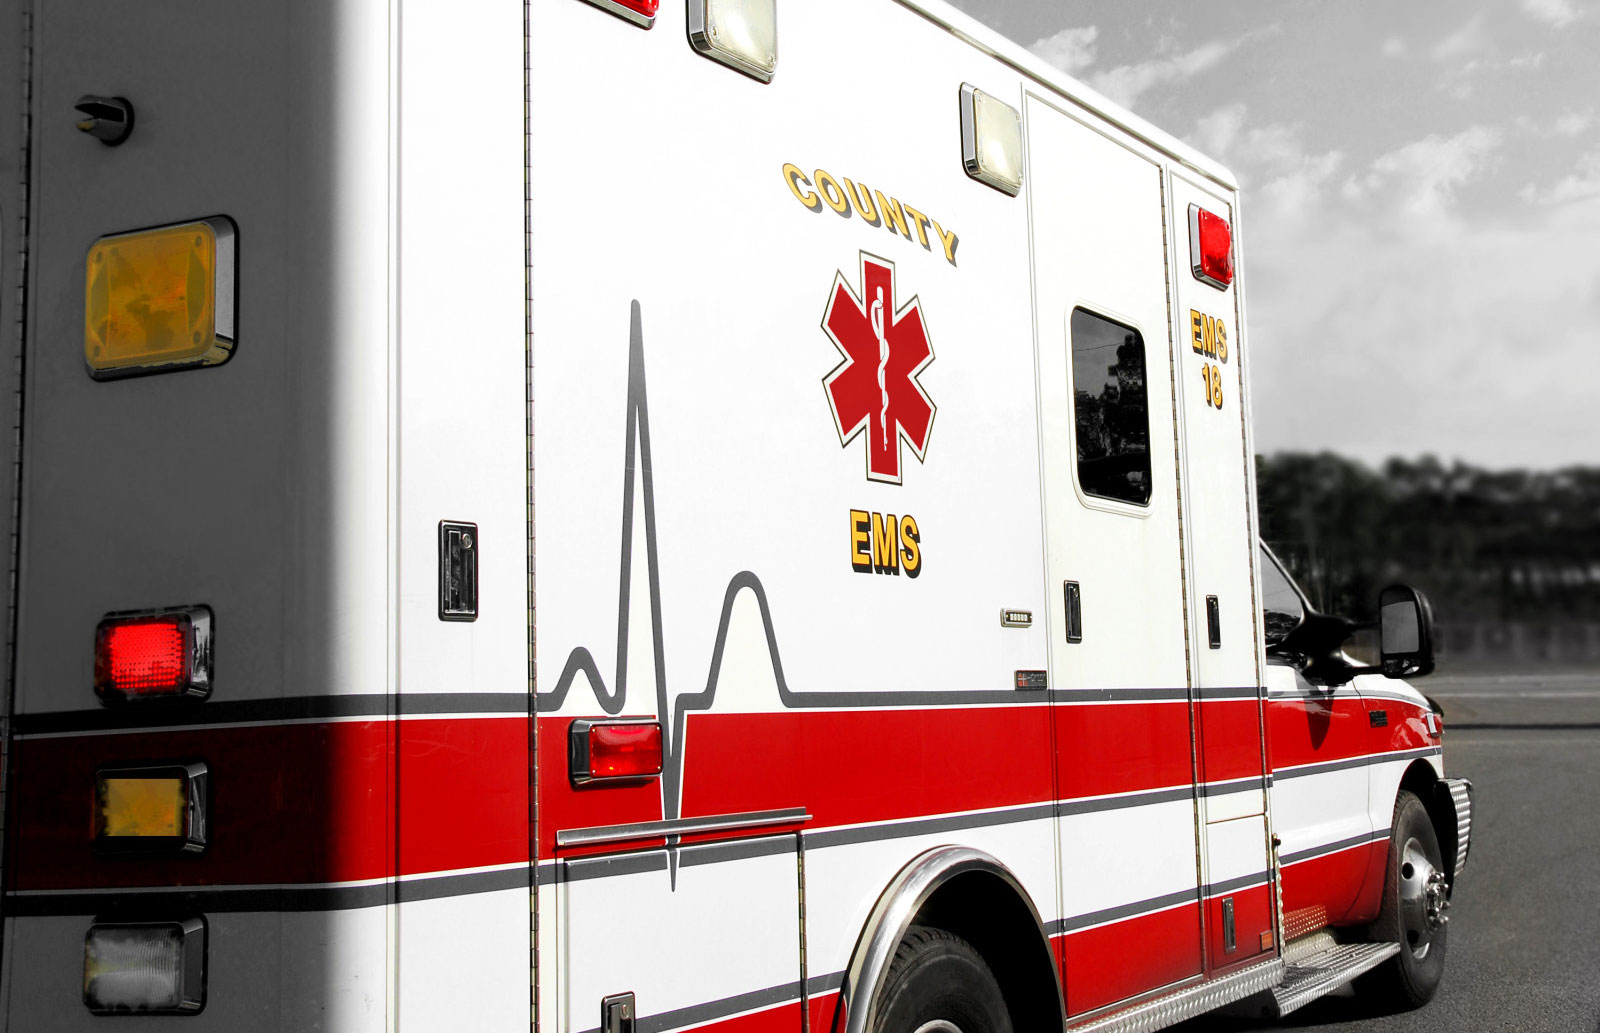 All 50 states opt in to AT&T's FirstNet public safety network